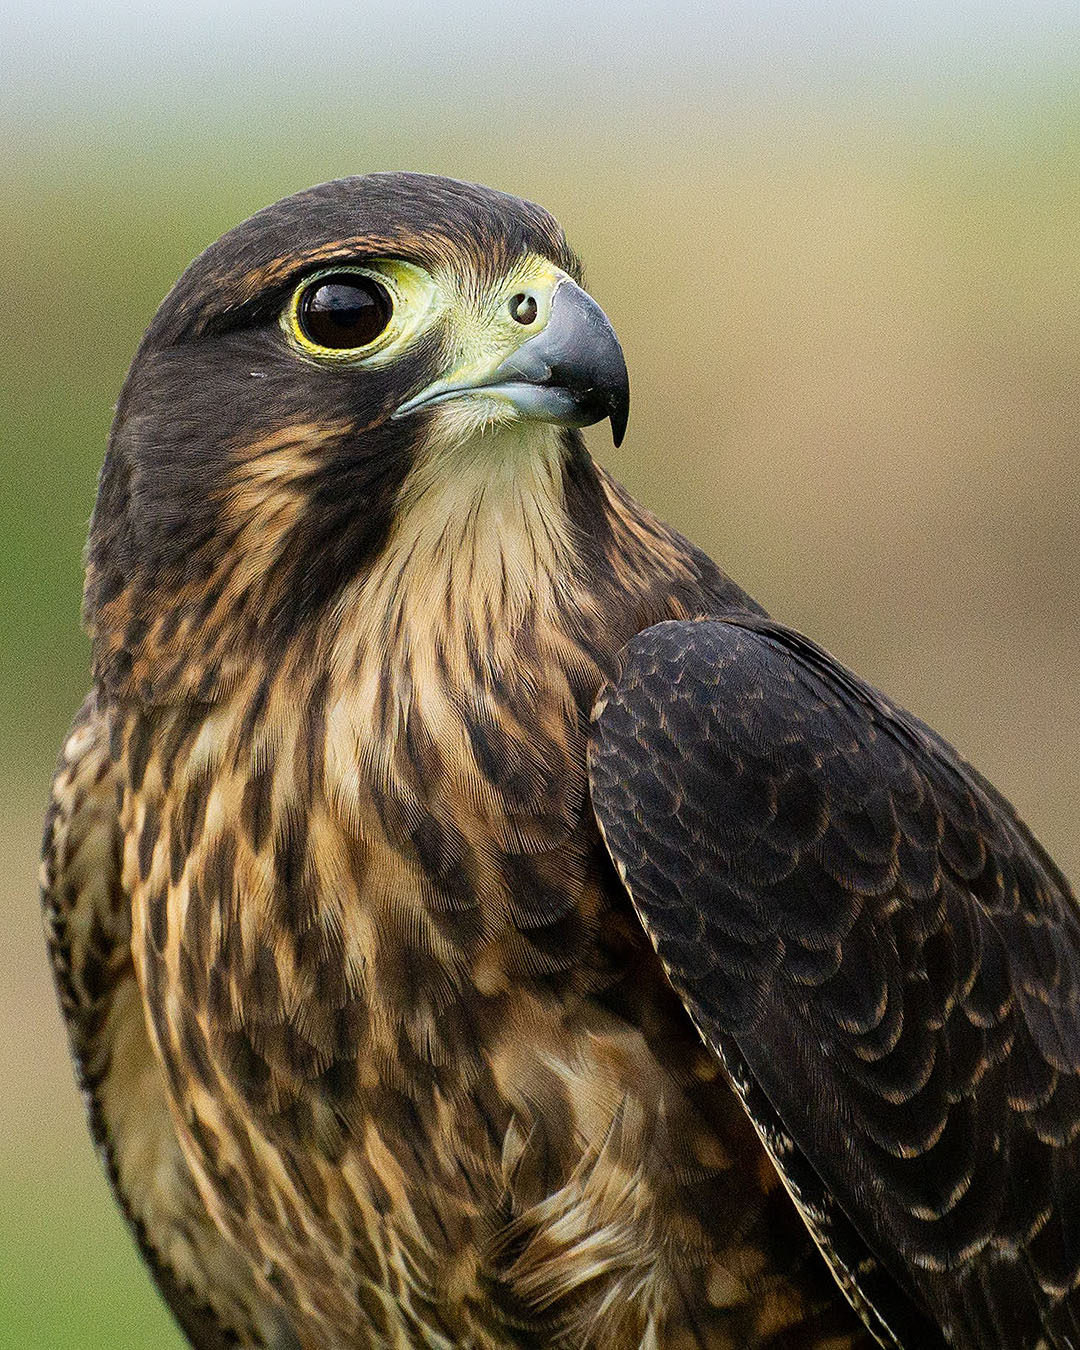 A stunning close up view of a New Zealand falcon.